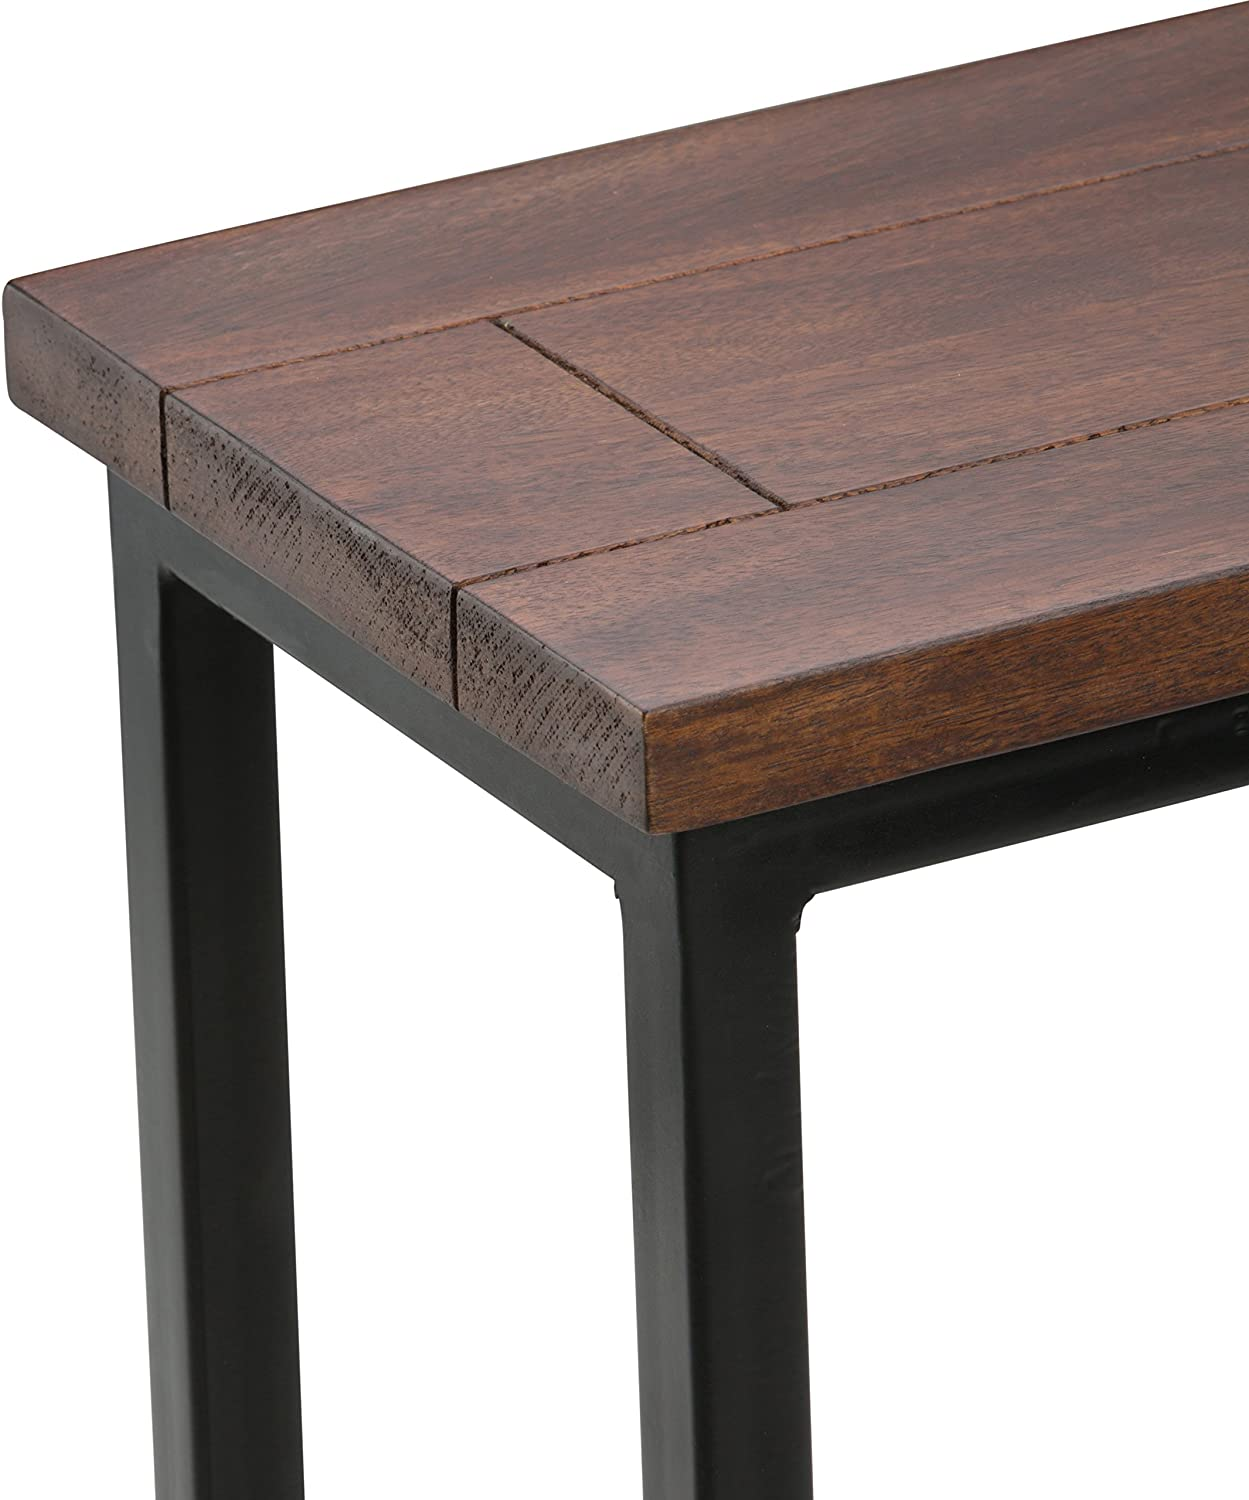 Simpli Home Skyler Solid Mango Wood and Metal 18 inch wide Rectangle Industrial C Side Table in Dark Cognac Brown, Fully Assembled, for the Living Room and Bedroom: Furniture & Decor